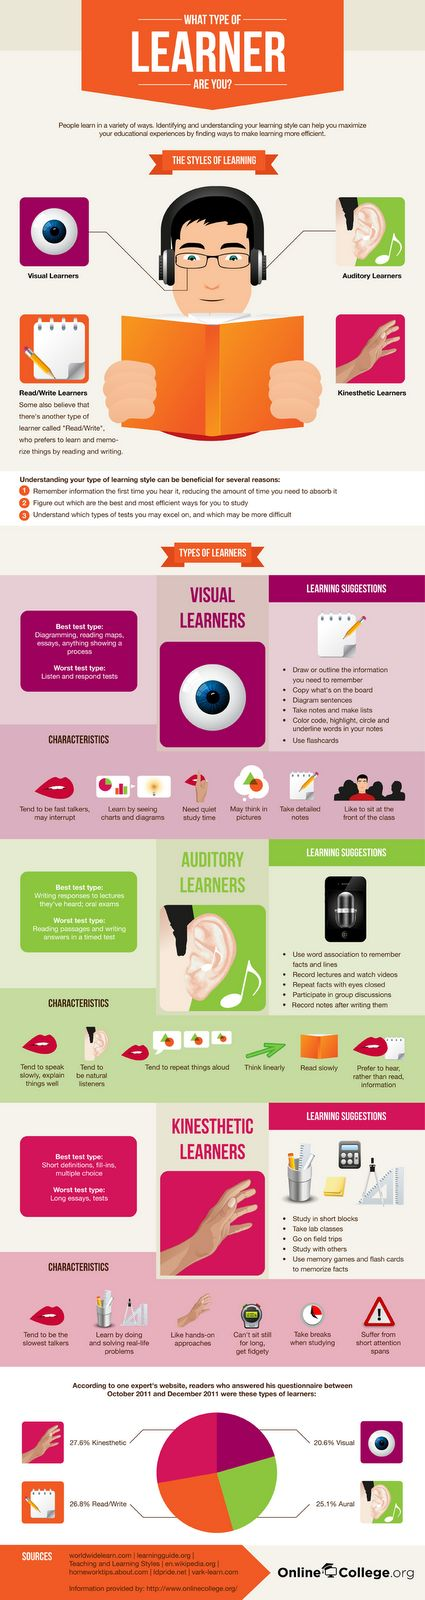 Learning Styles - What kind of learner are you?